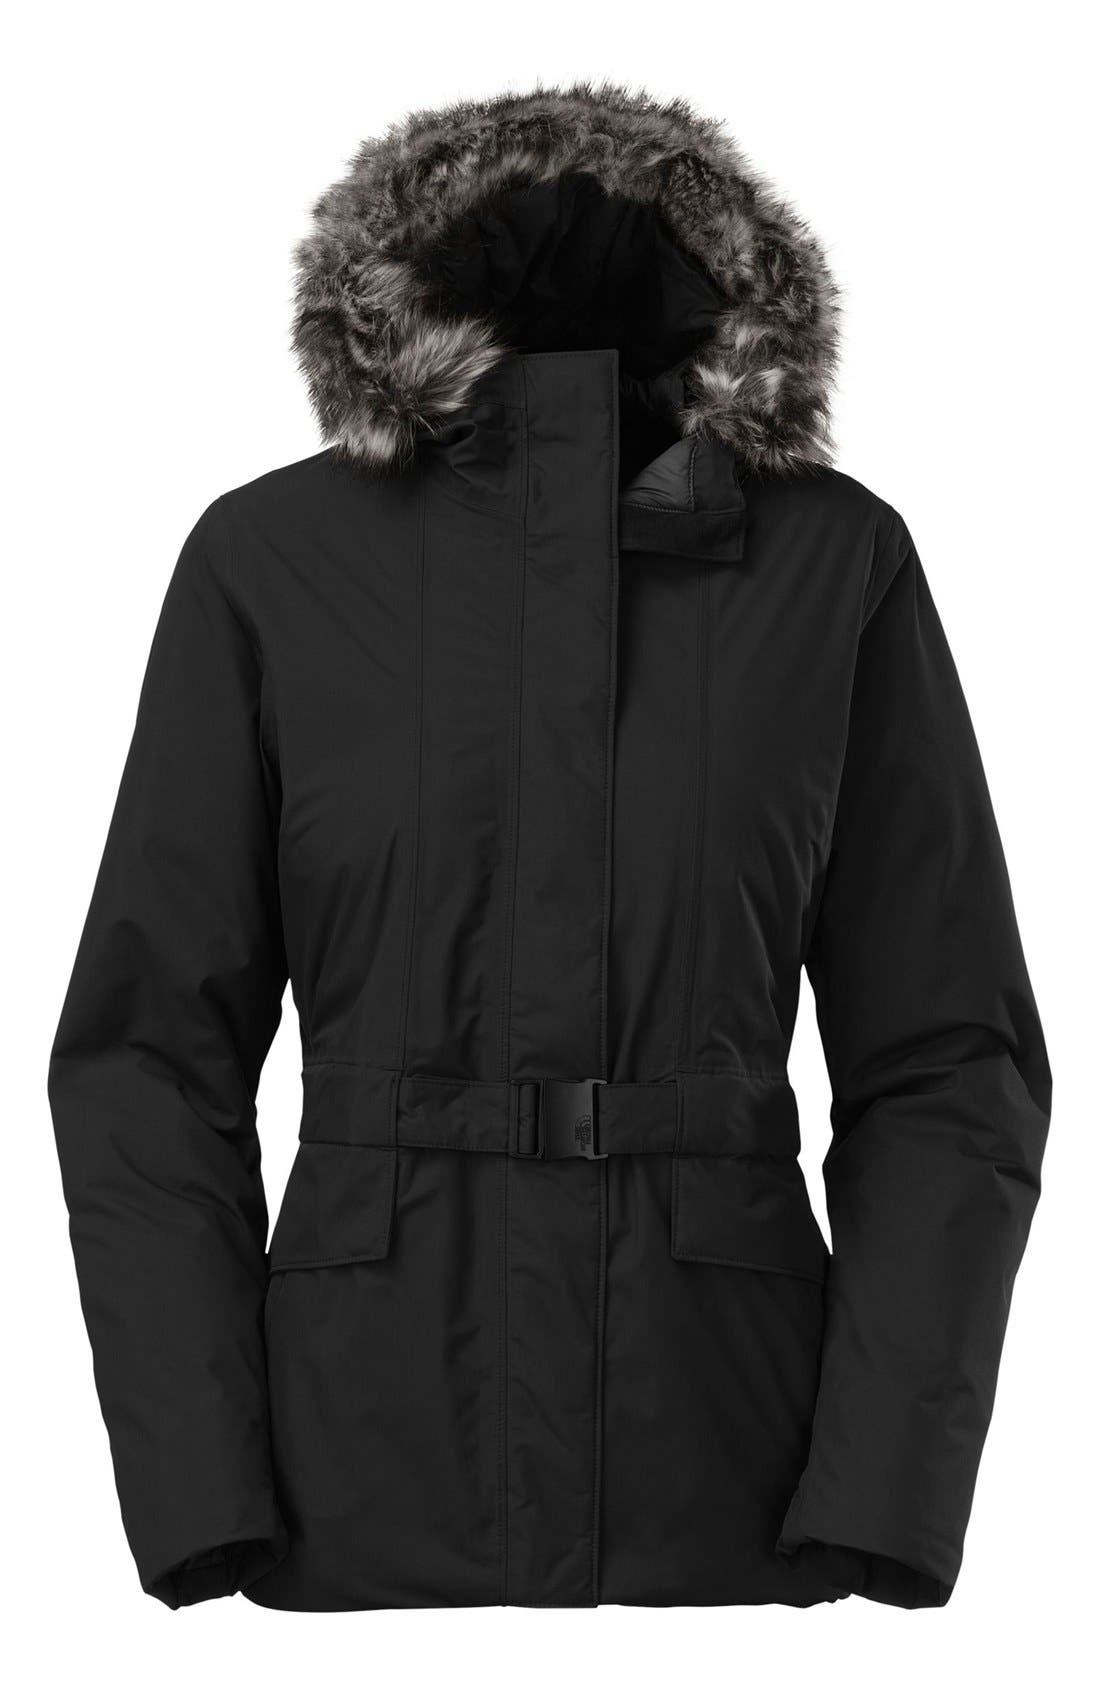 Alternate Image 1 Selected - The North Face 'Dunagiri' Waterproof Down Parka with Faux Fur Trim